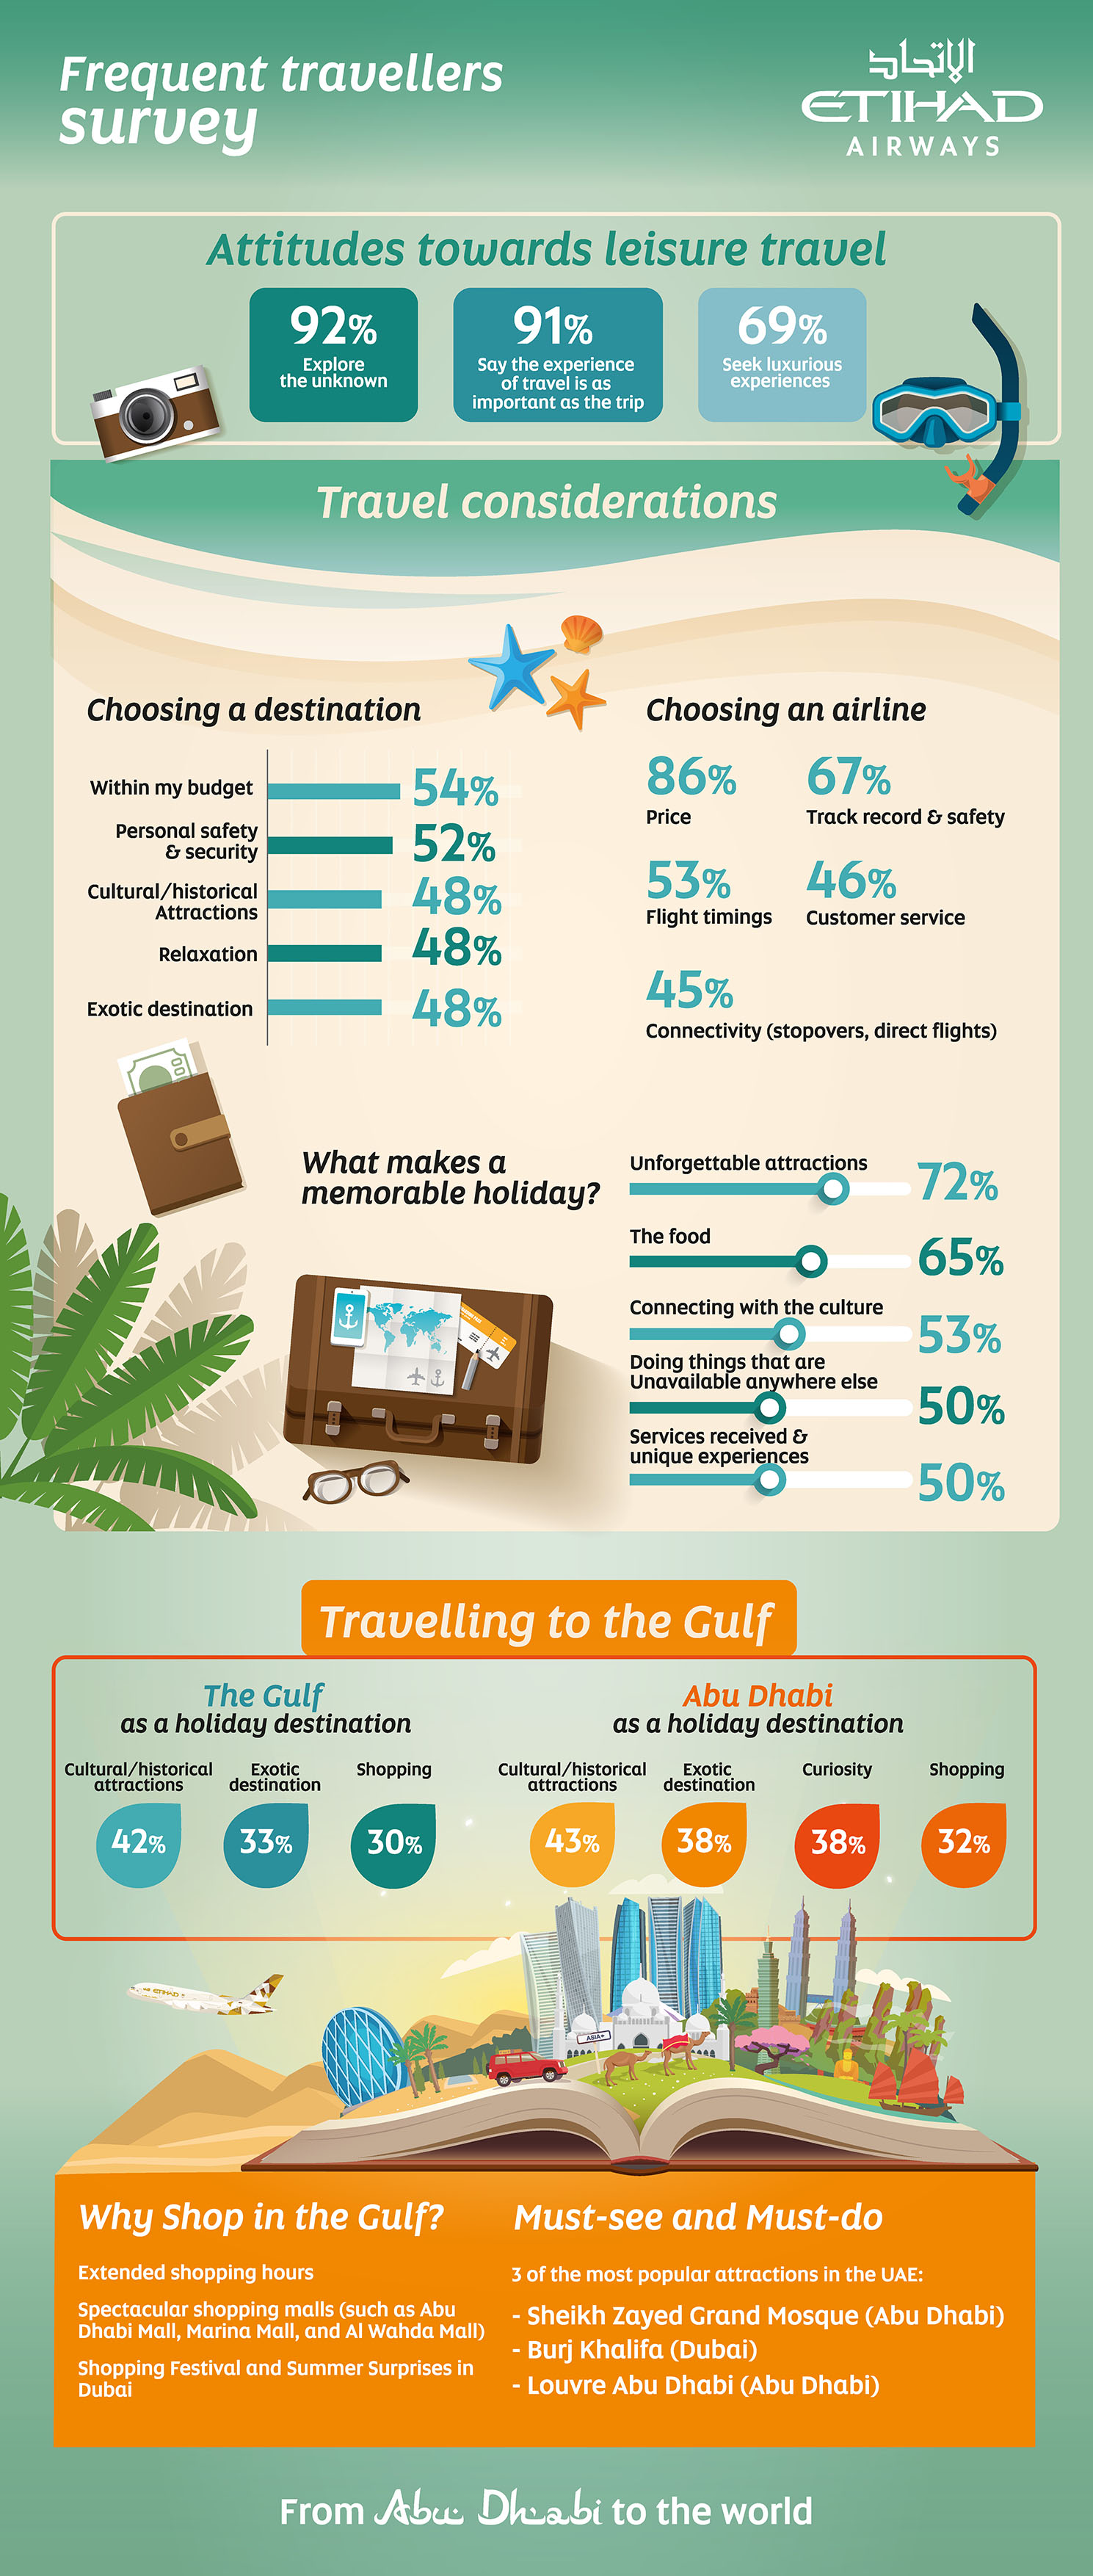 Etihad Frequent Travellers Survey Infographic